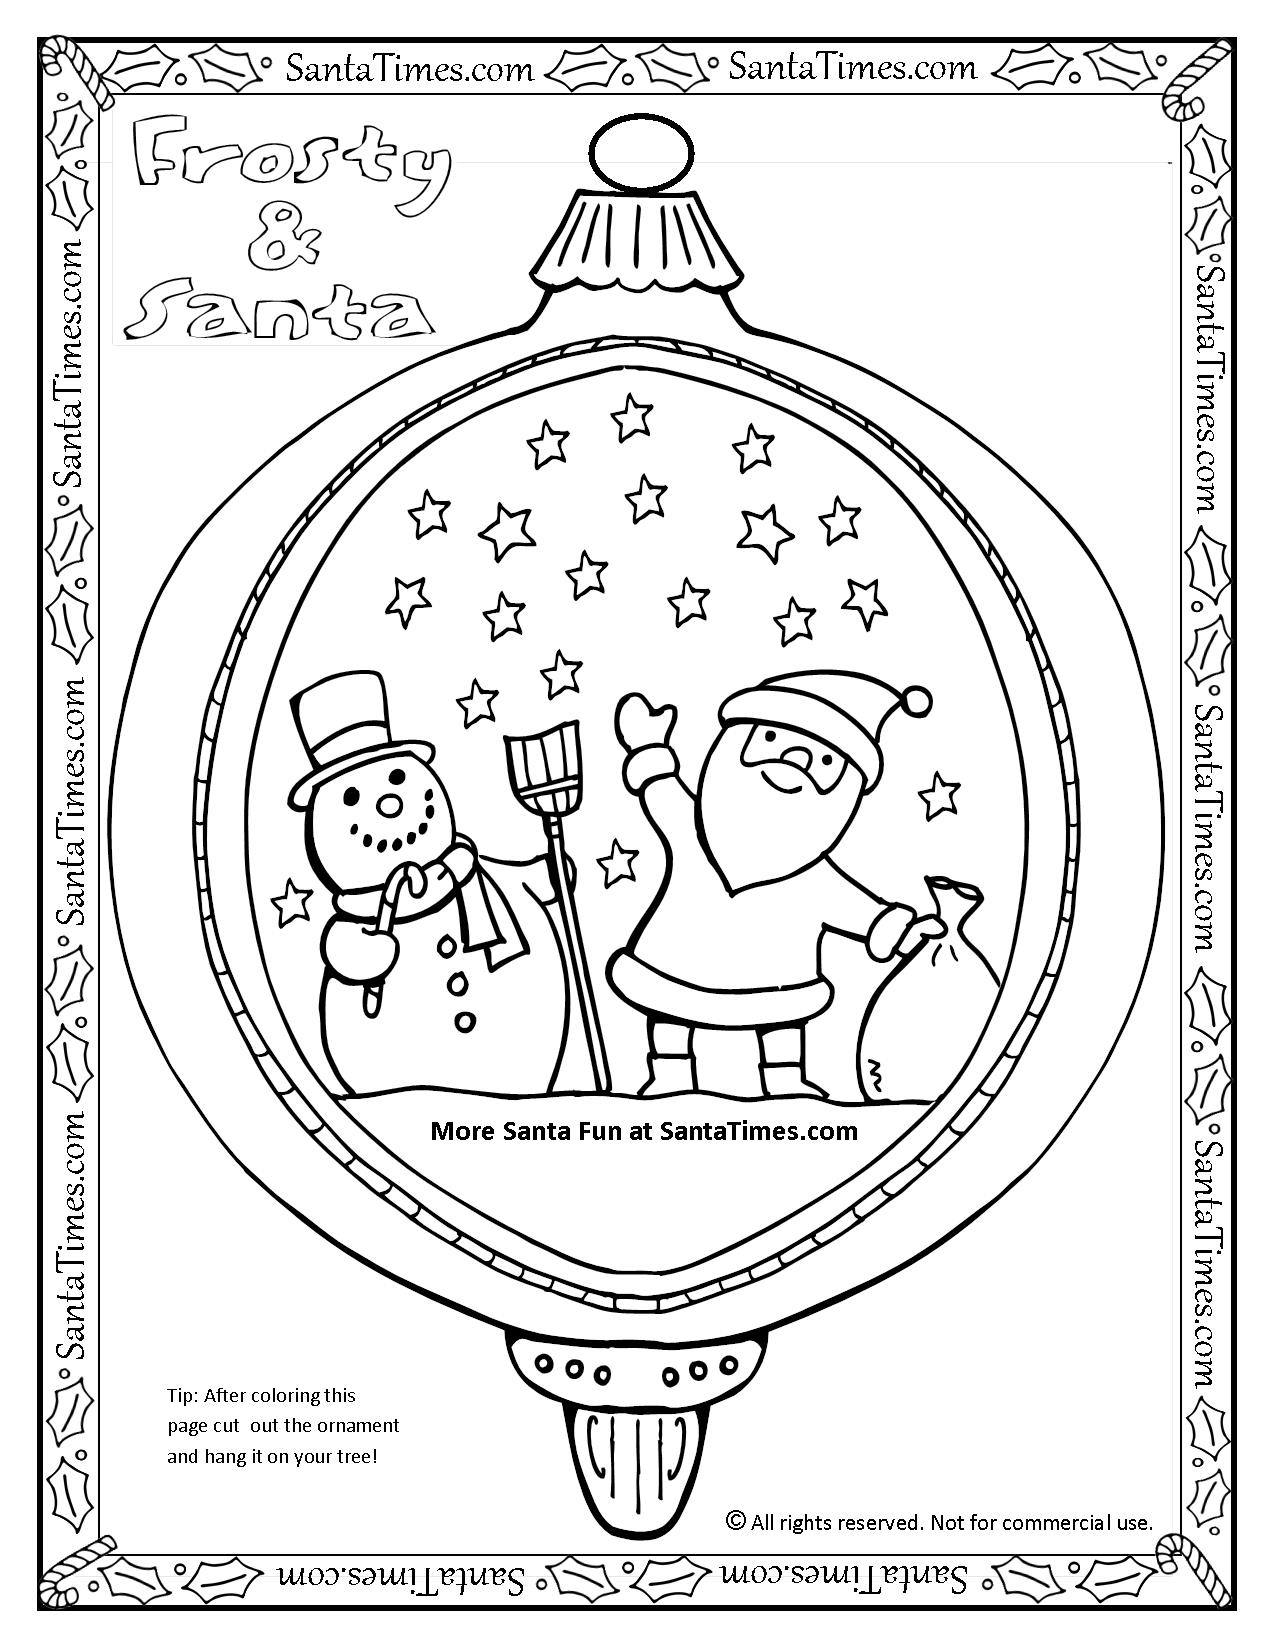 Santa And Frosty Ornament Coloring Page